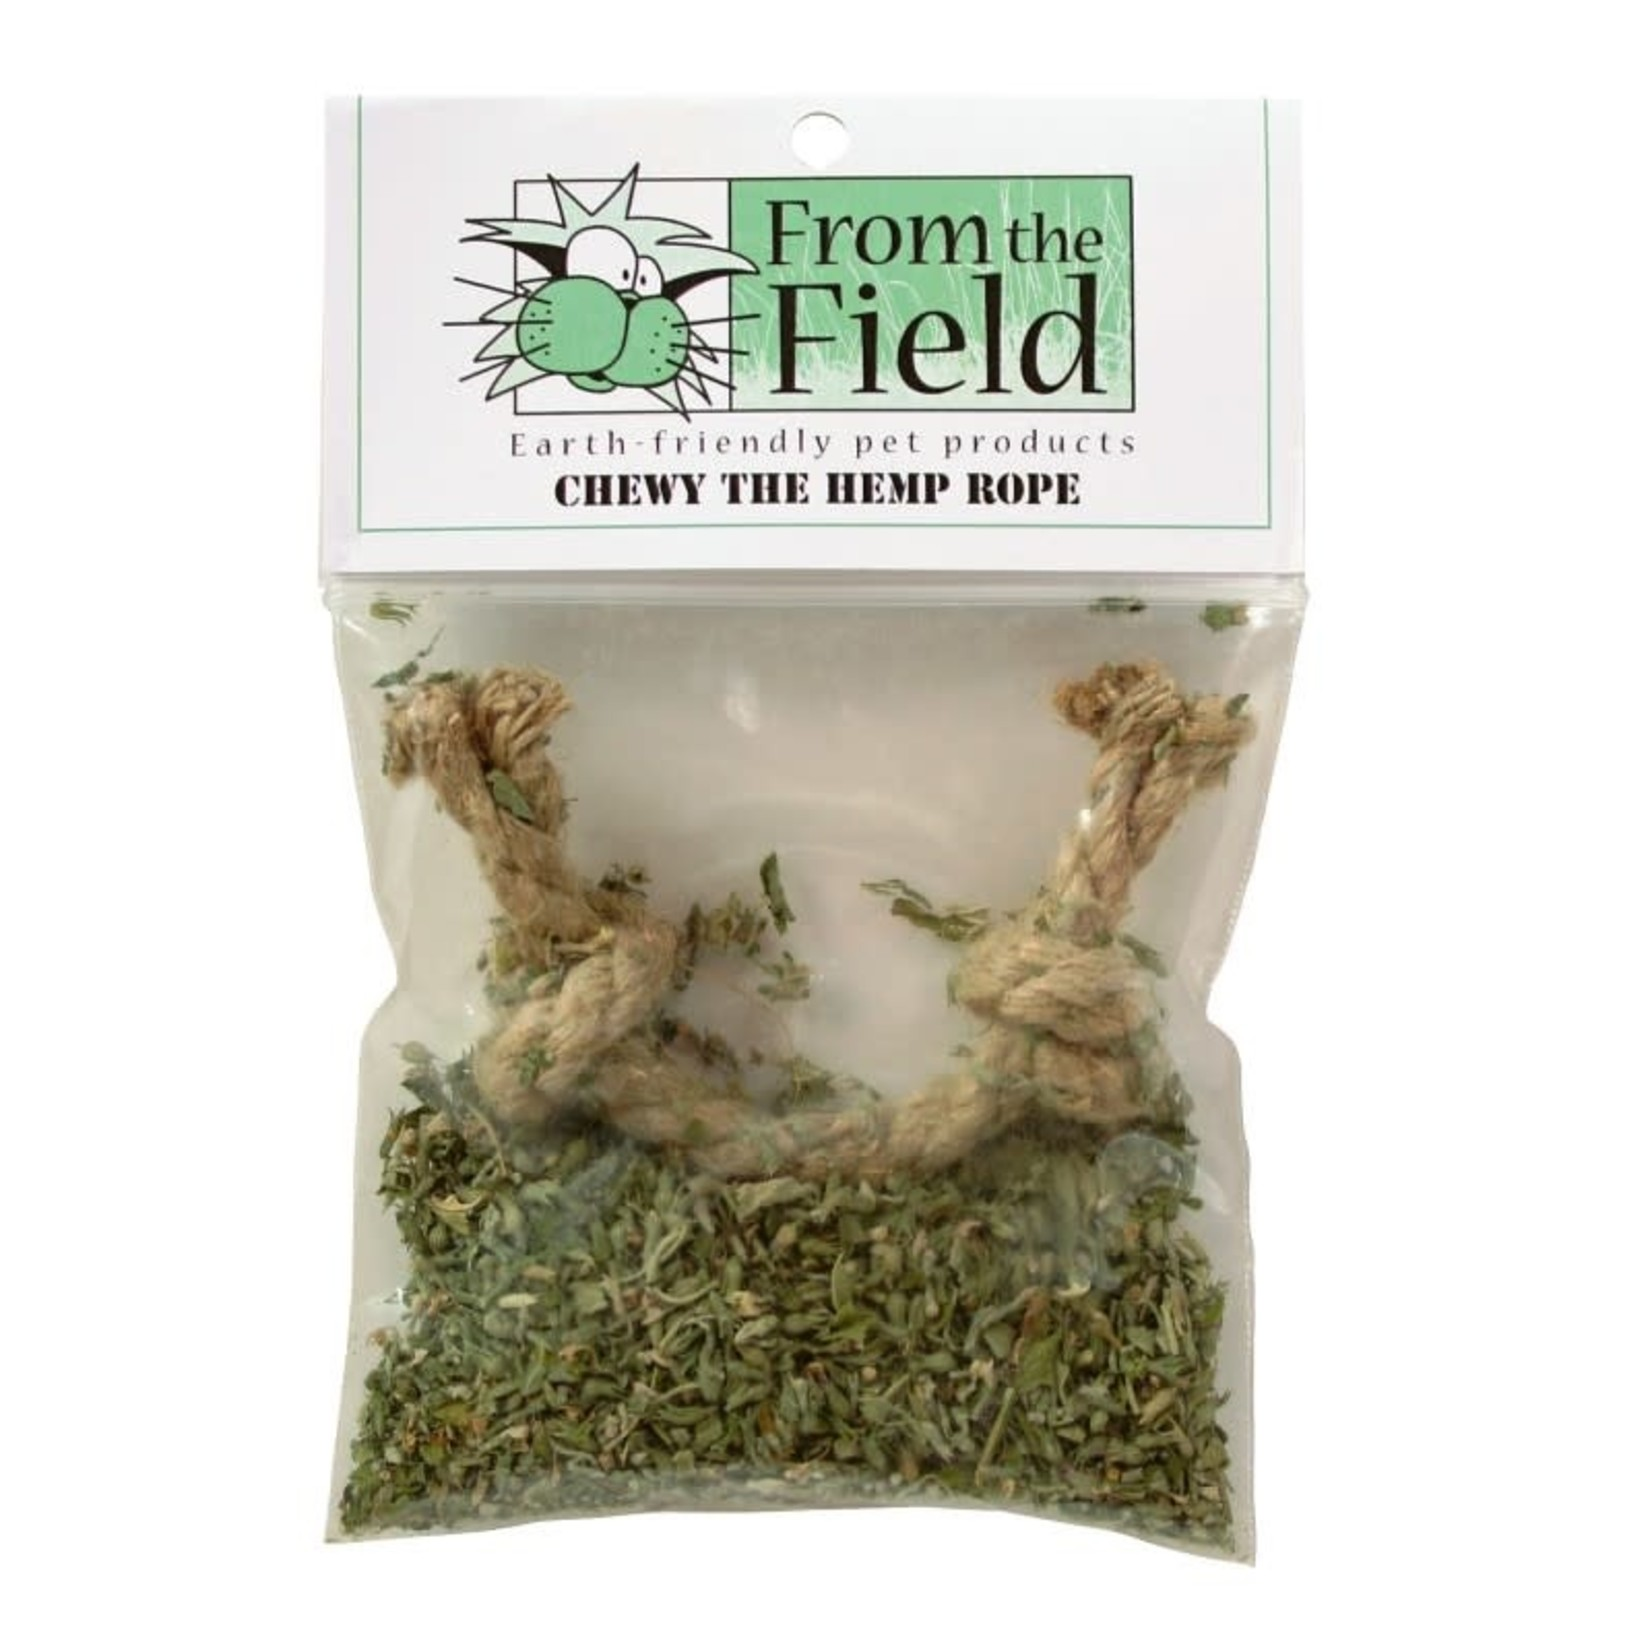 From The Field From The Field Chewy The Hemp Rope